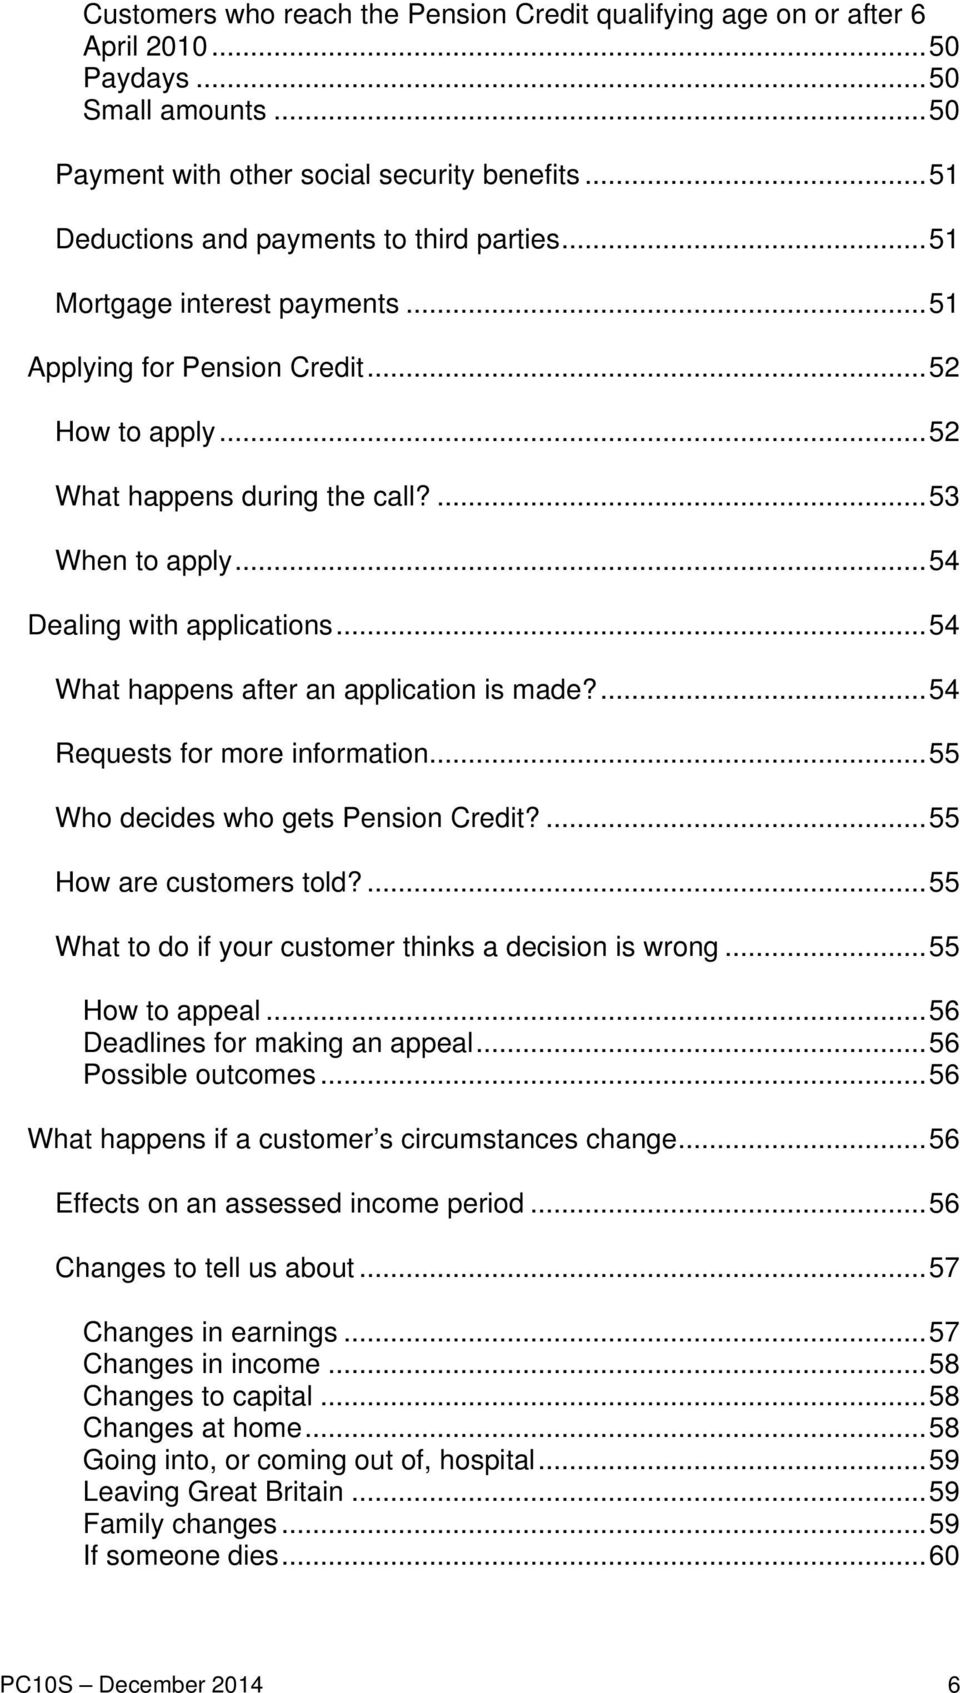 .. 54 Dealing with applications... 54 What happens after an application is made?... 54 Requests for more information... 55 Who decides who gets Pension Credit?... 55 How are customers told?